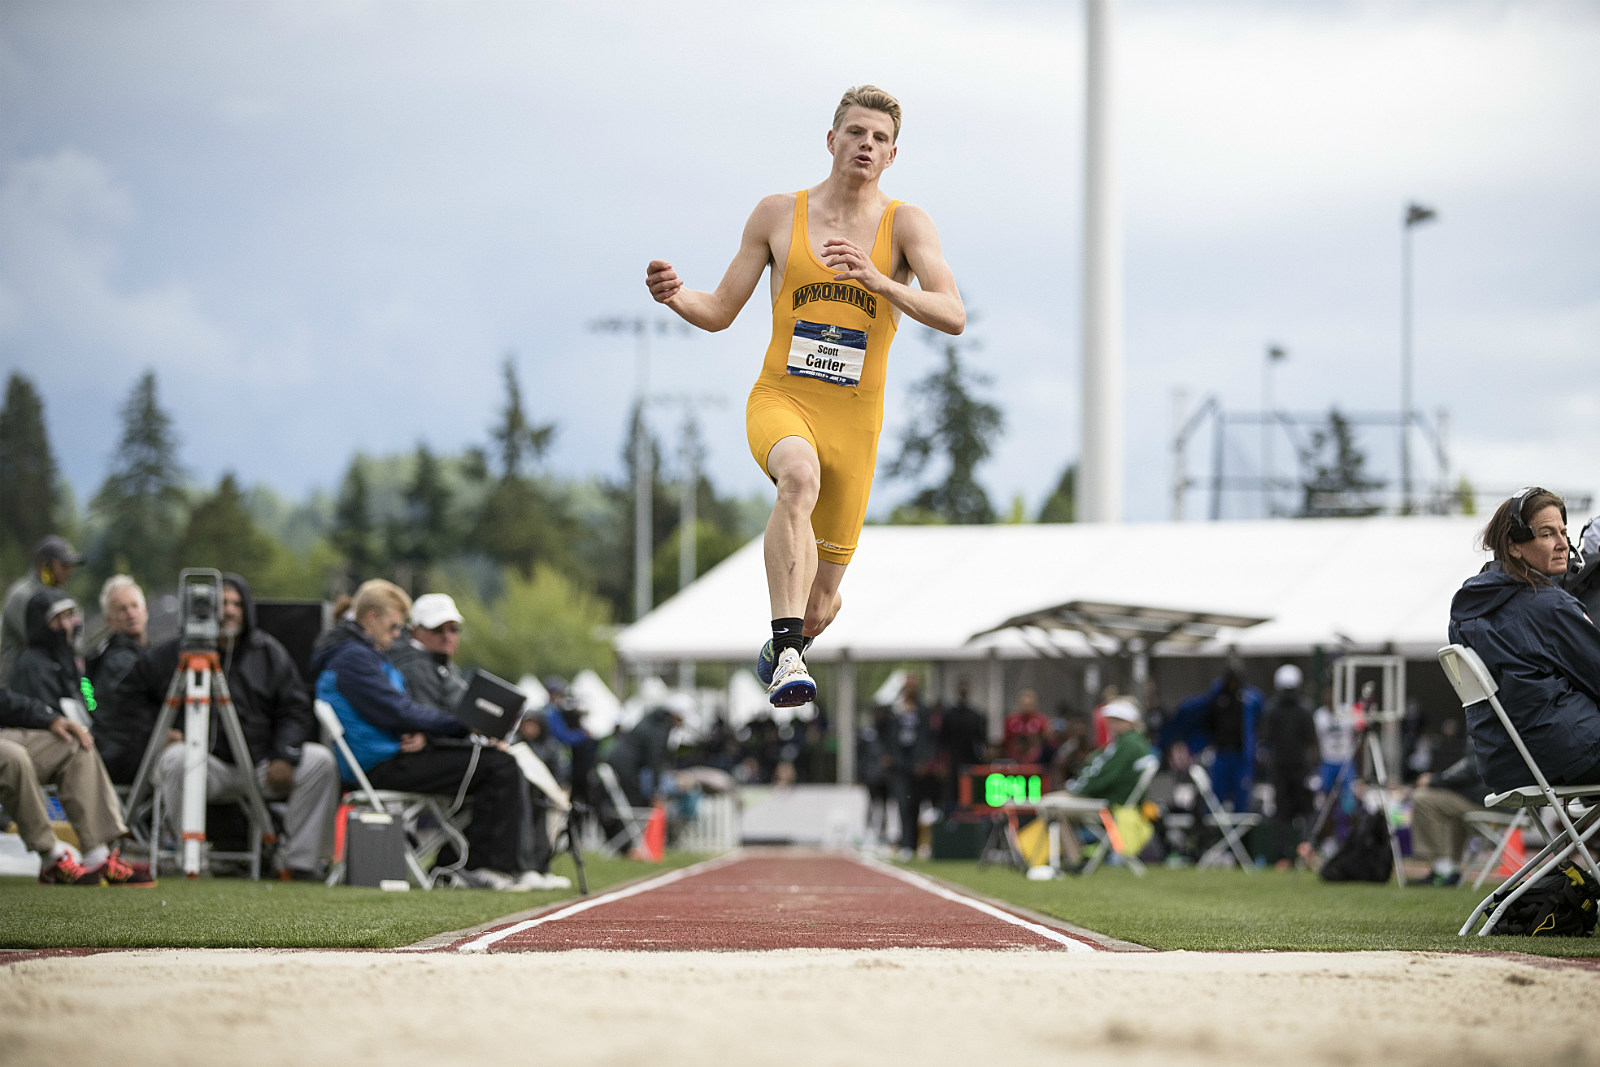 Scott Carter, Wyoming, UW Track, NCAA Championships 2017